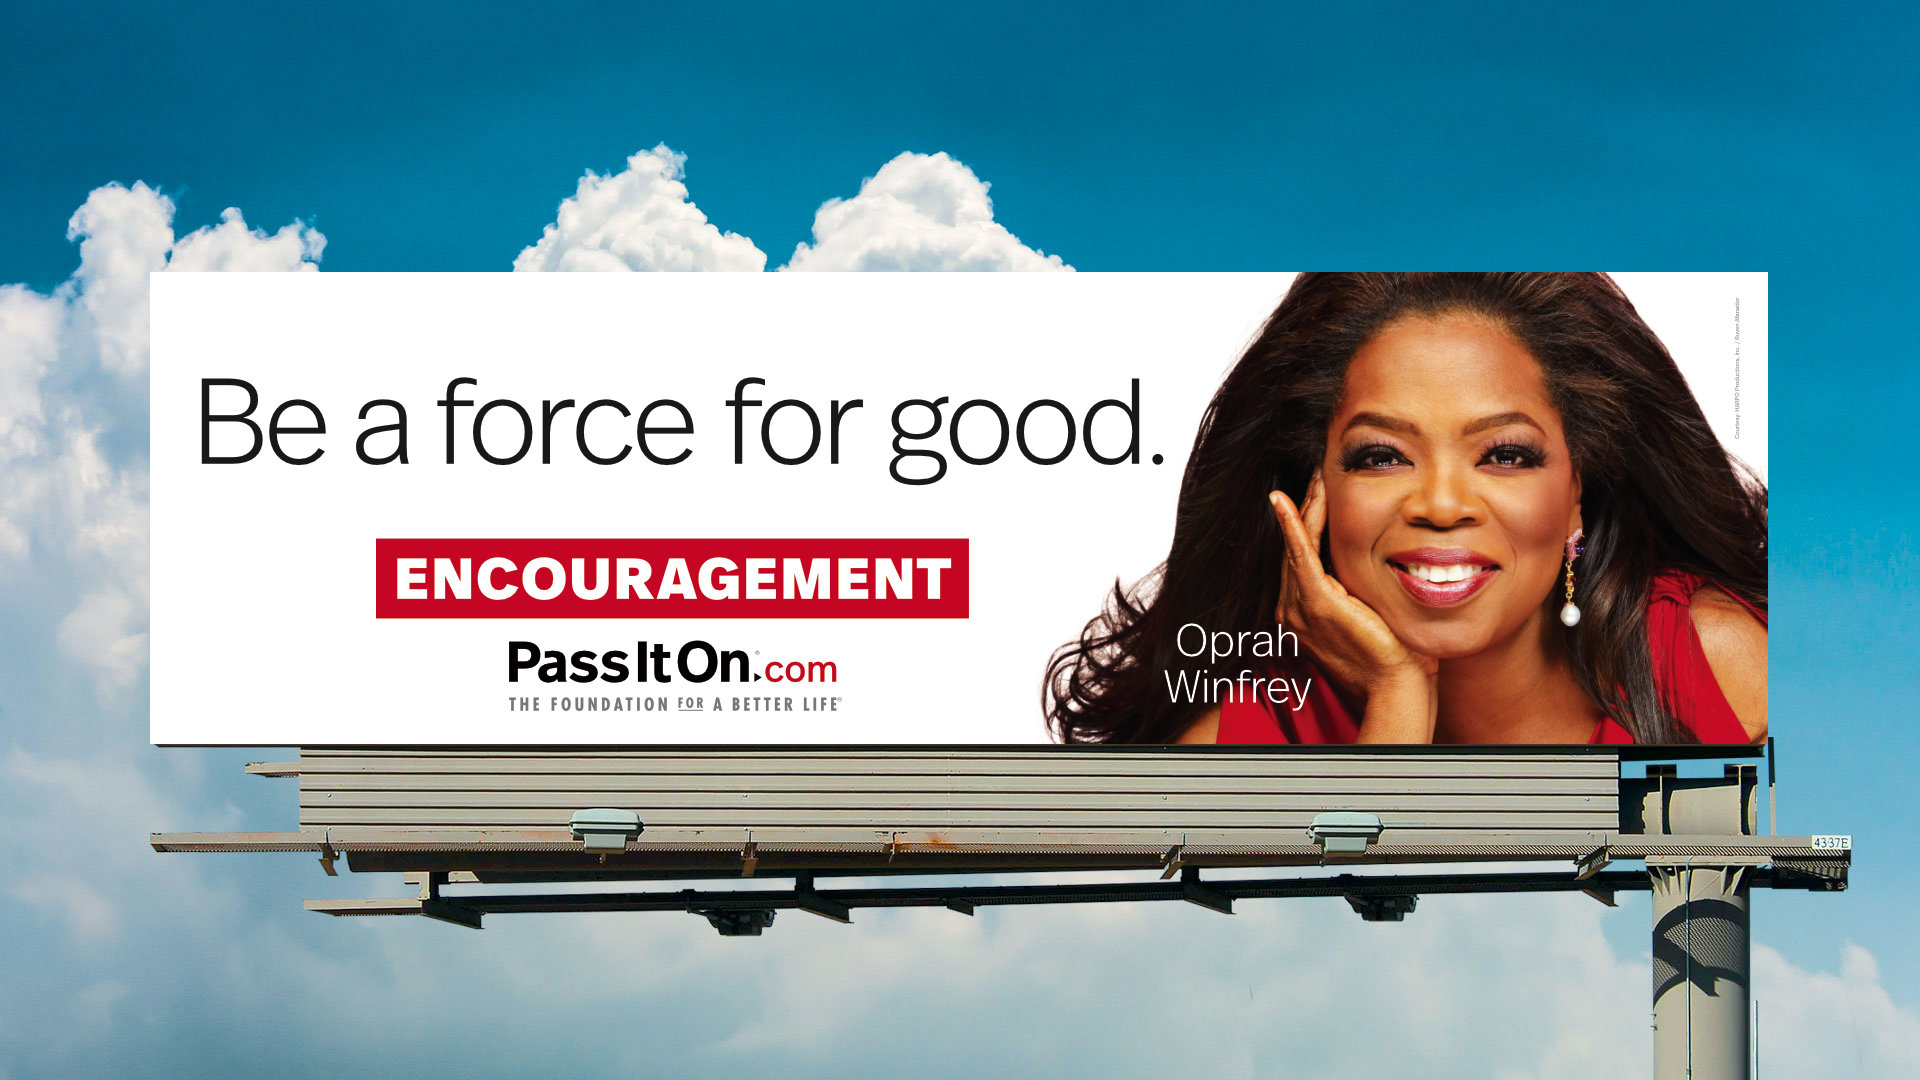 Be a force for good encouragement